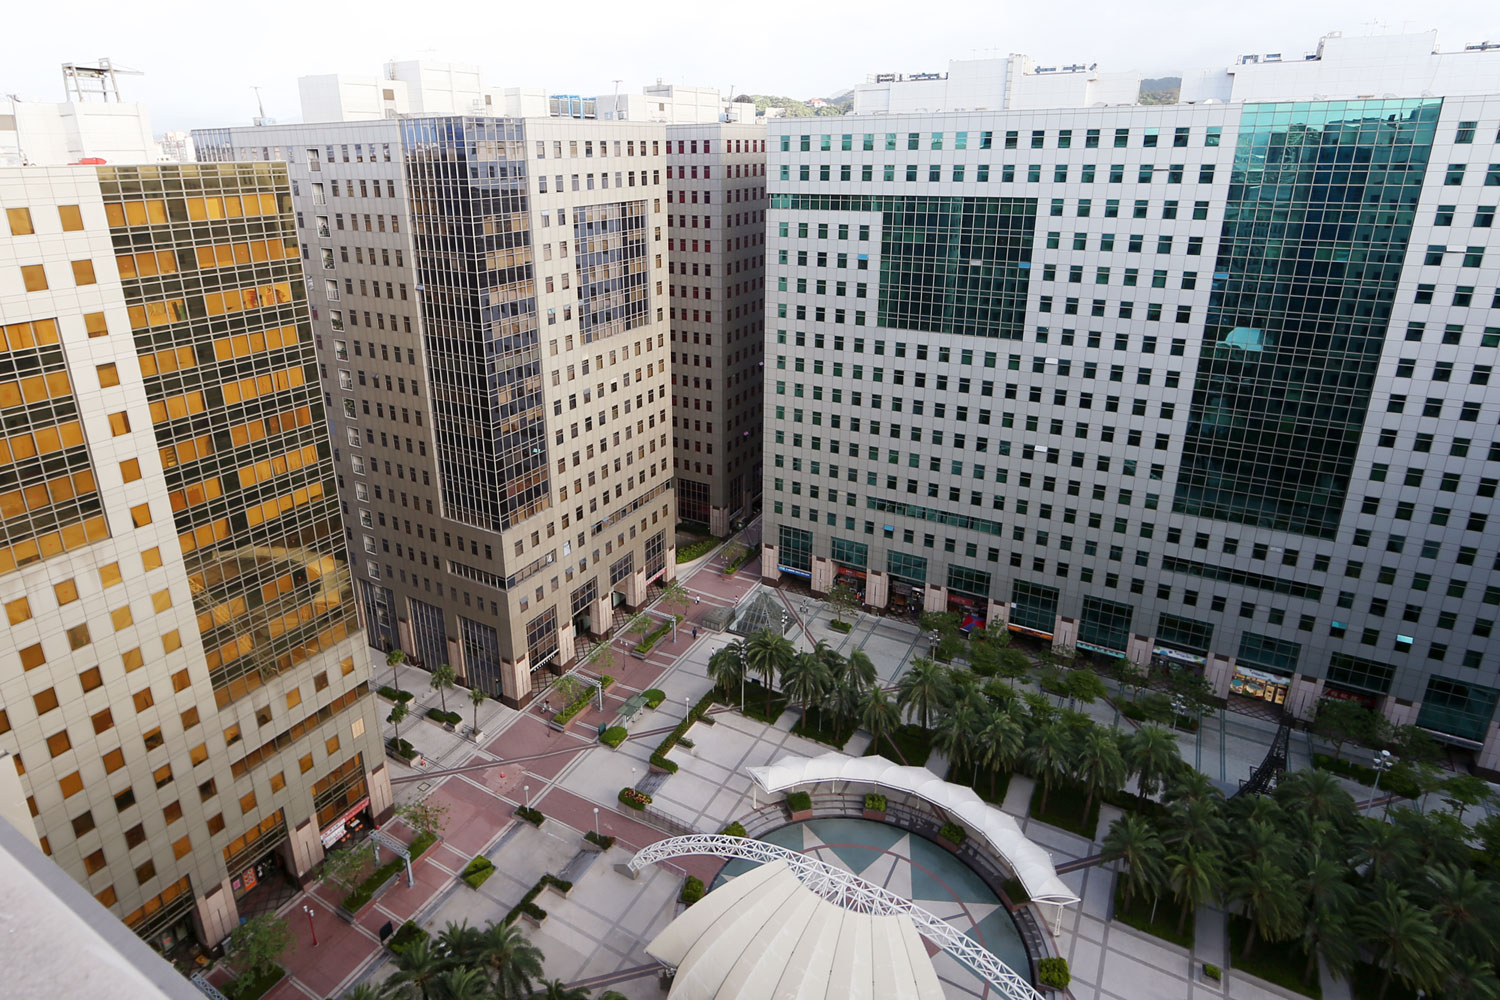 The industrial plaza that Pan Taiwan headquarter is located.